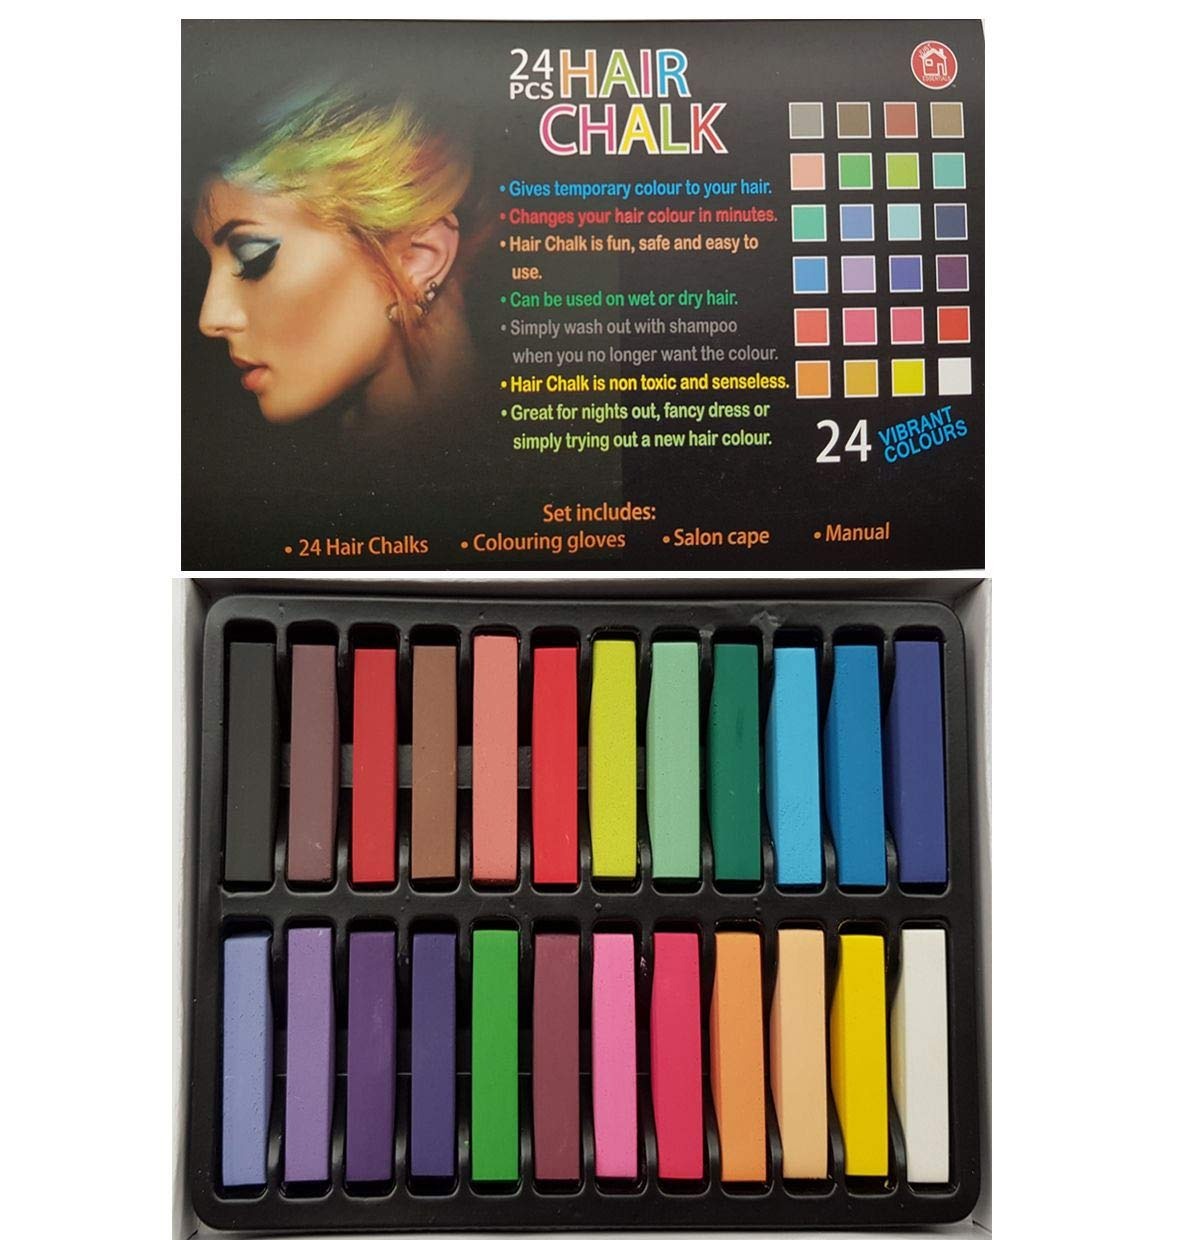 24 Piece Hair Chalk Vibrant Colours Temporary Hair Dye Gloves & Cape Included Gigi Queen